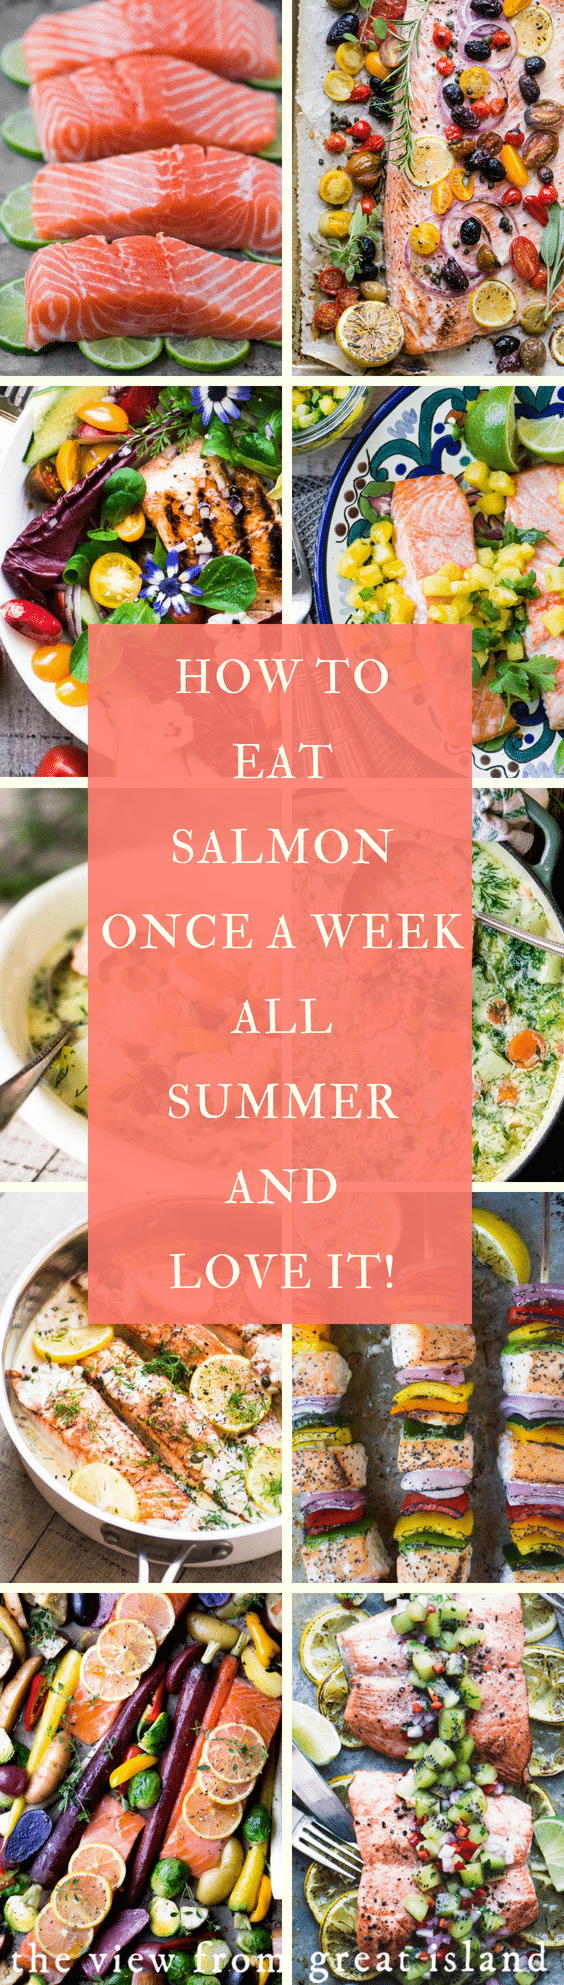 How to Eat Salmon Once a Week all Summer and Love it!  13 mouthwatering salmon recipes...#salmon #fish #healthy #grilled #roasted #soup #salad #skewers #baked #panseared #easy #cakes #dinner #lemon #meatless #glutenfree #seafood #weightwatchers #paleo #whole30